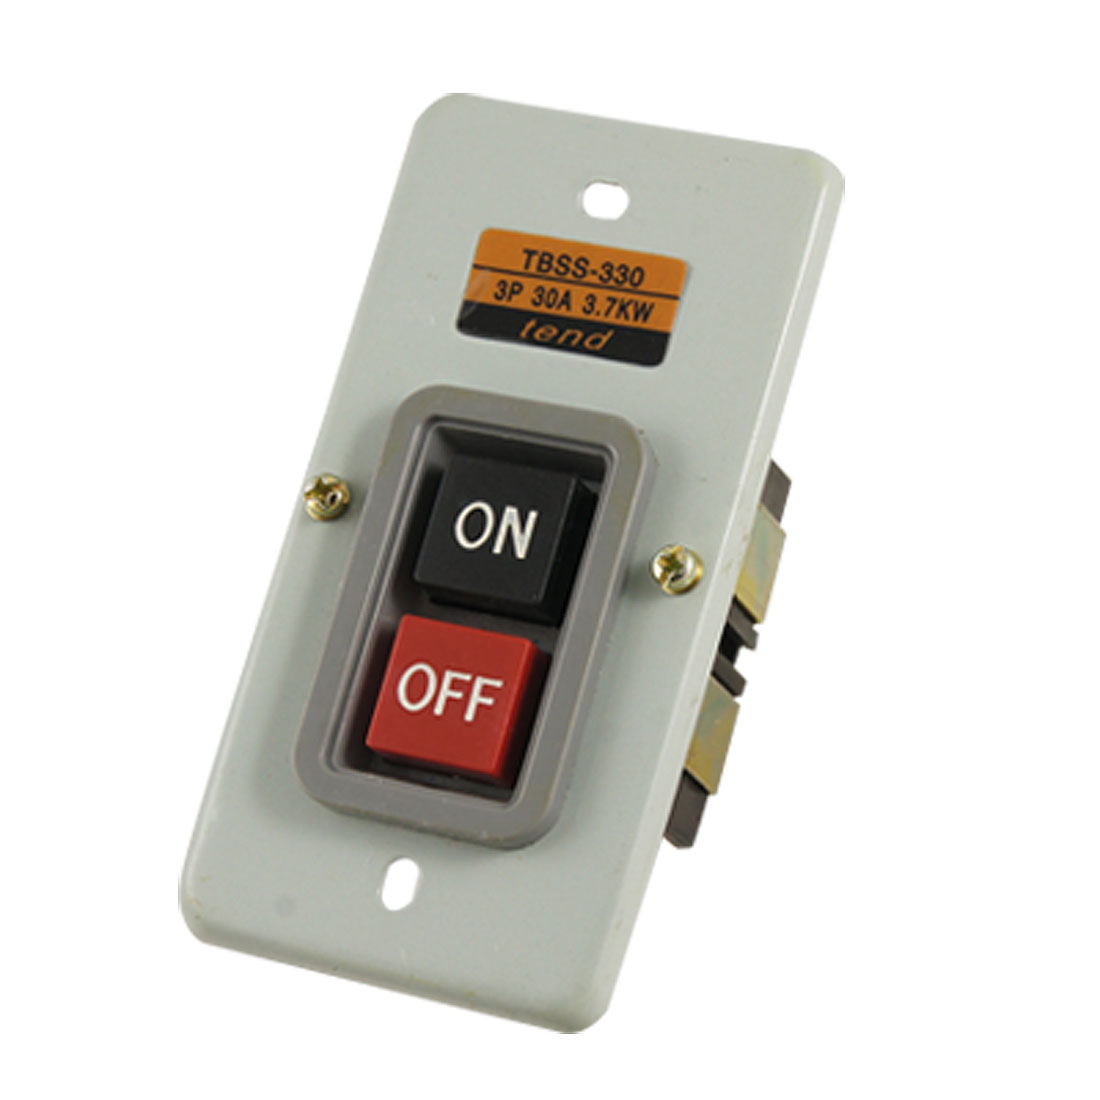 AC 380V 30A 3.7Kw NO OFF Dual Positions Power Push Button Switch